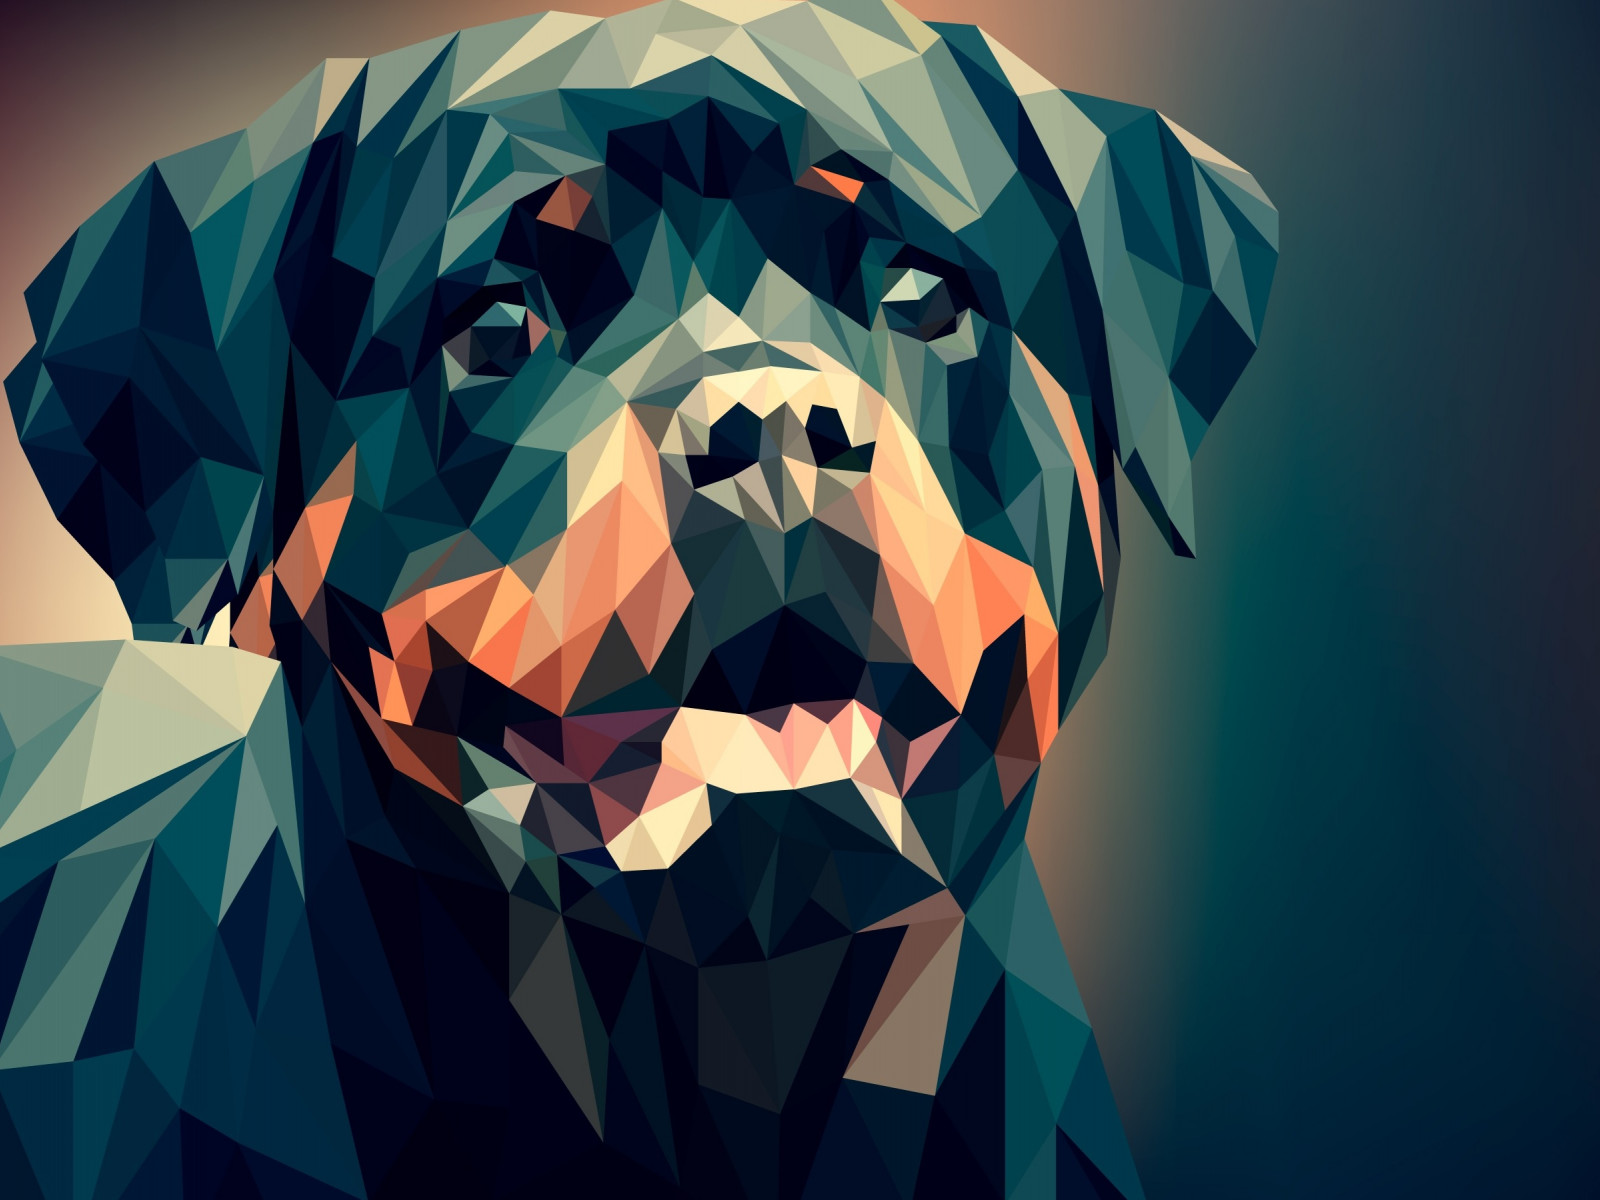 Low Poly Illustration: Rottweiler wallpaper 1600x1200